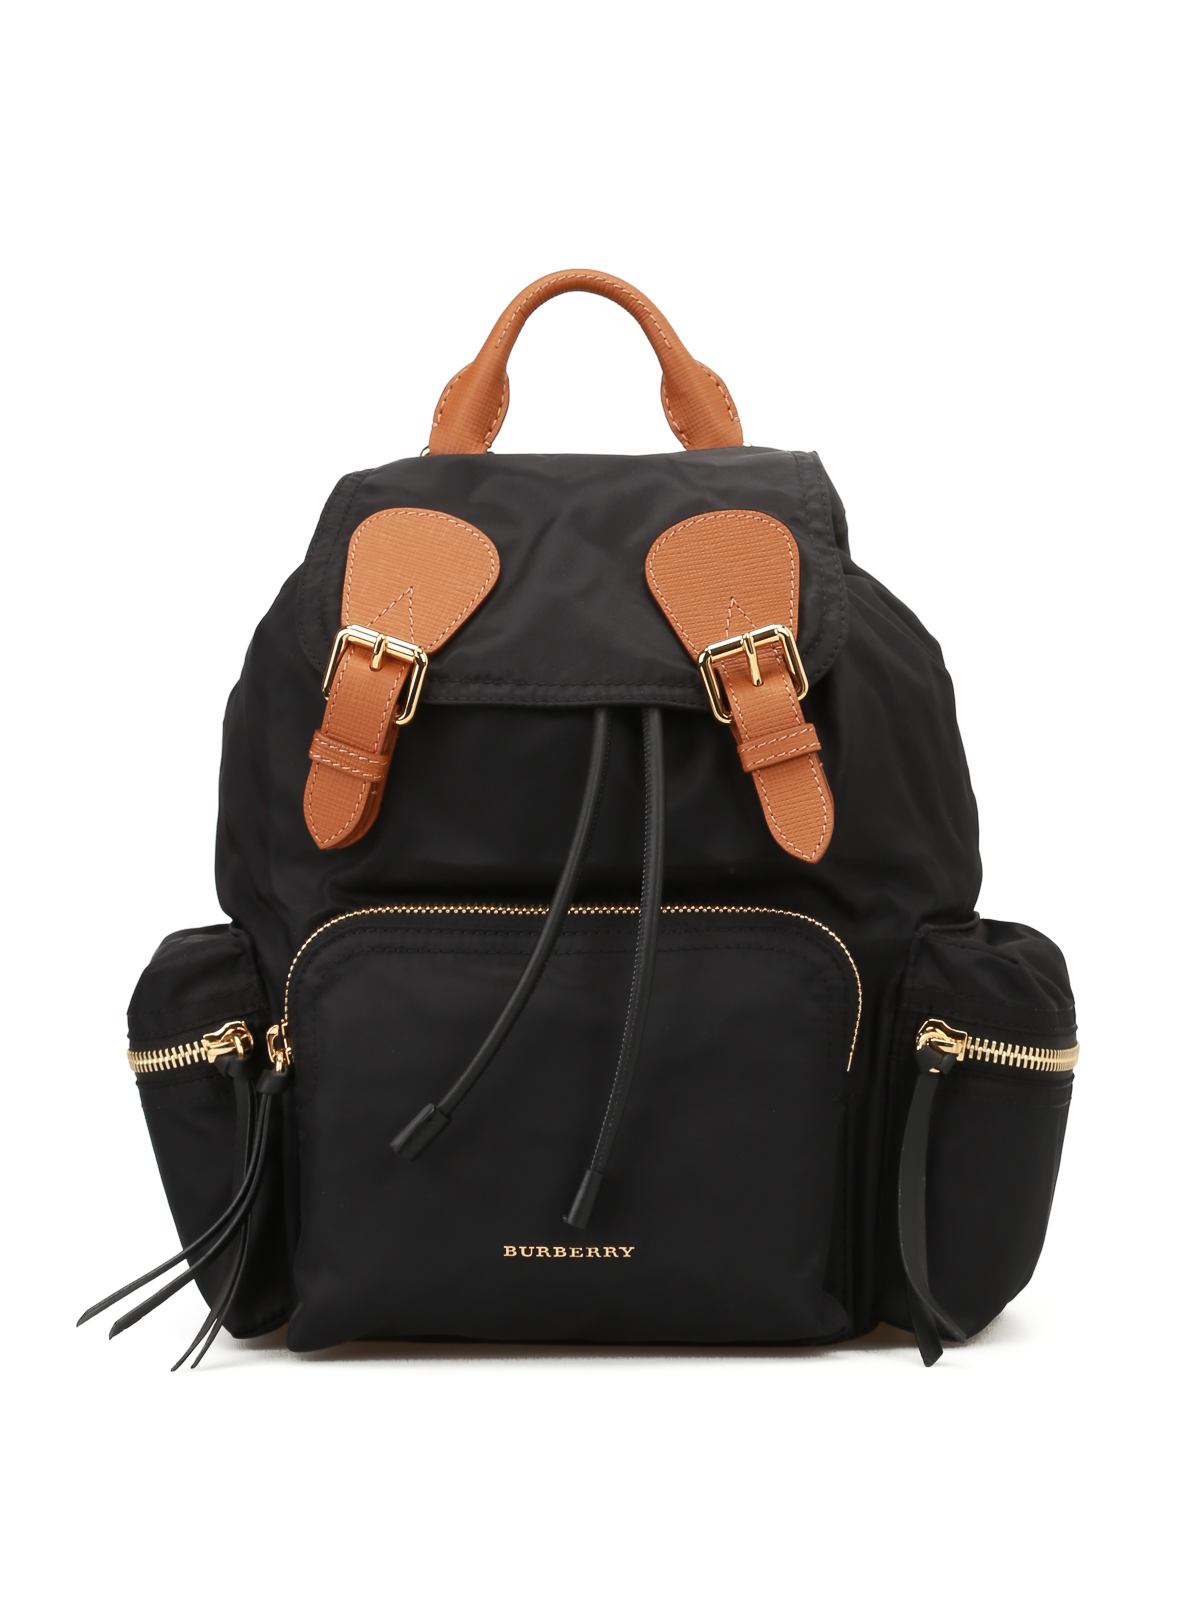 244ba70ec0 Burberry - Zaino medio in nylon The Rucksack - zaini - 4016622 ...